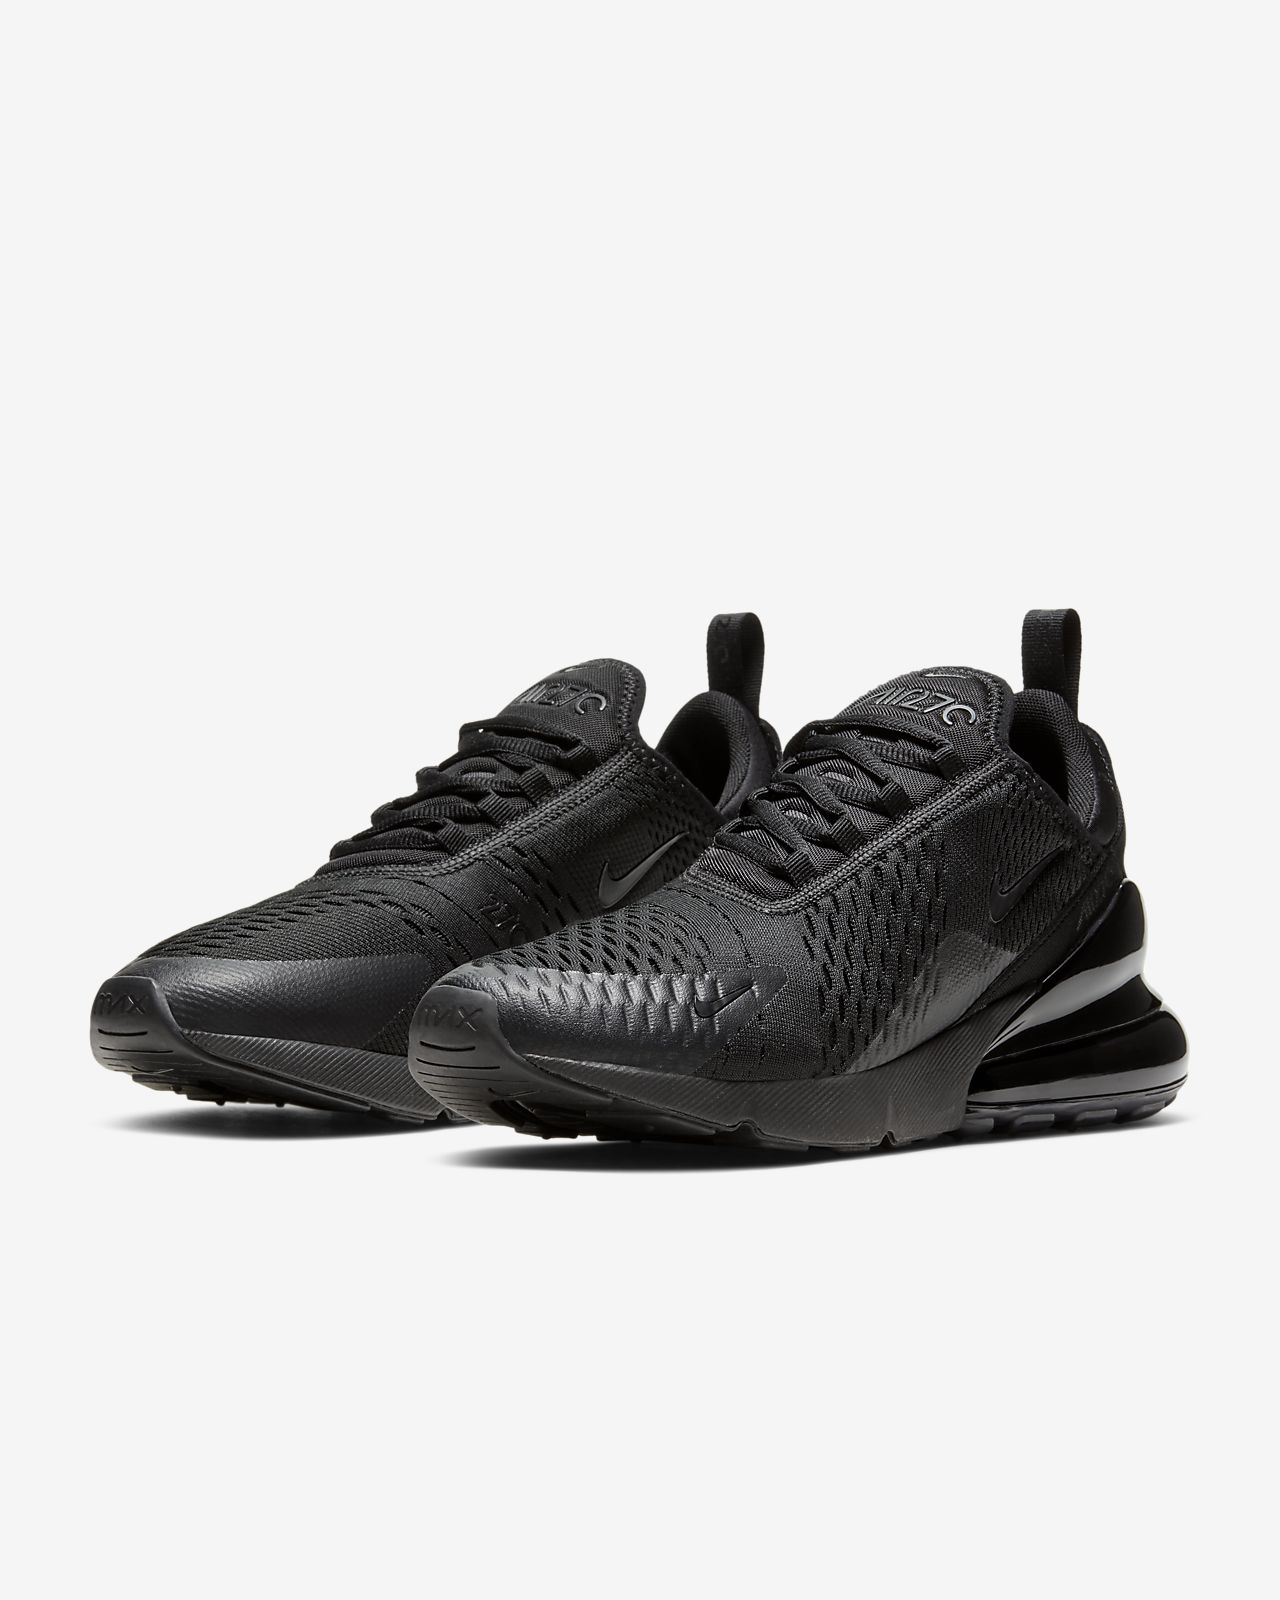 3d0f4e2c0c1905 Nike Air Max 270 Men s Shoe. Nike.com AU